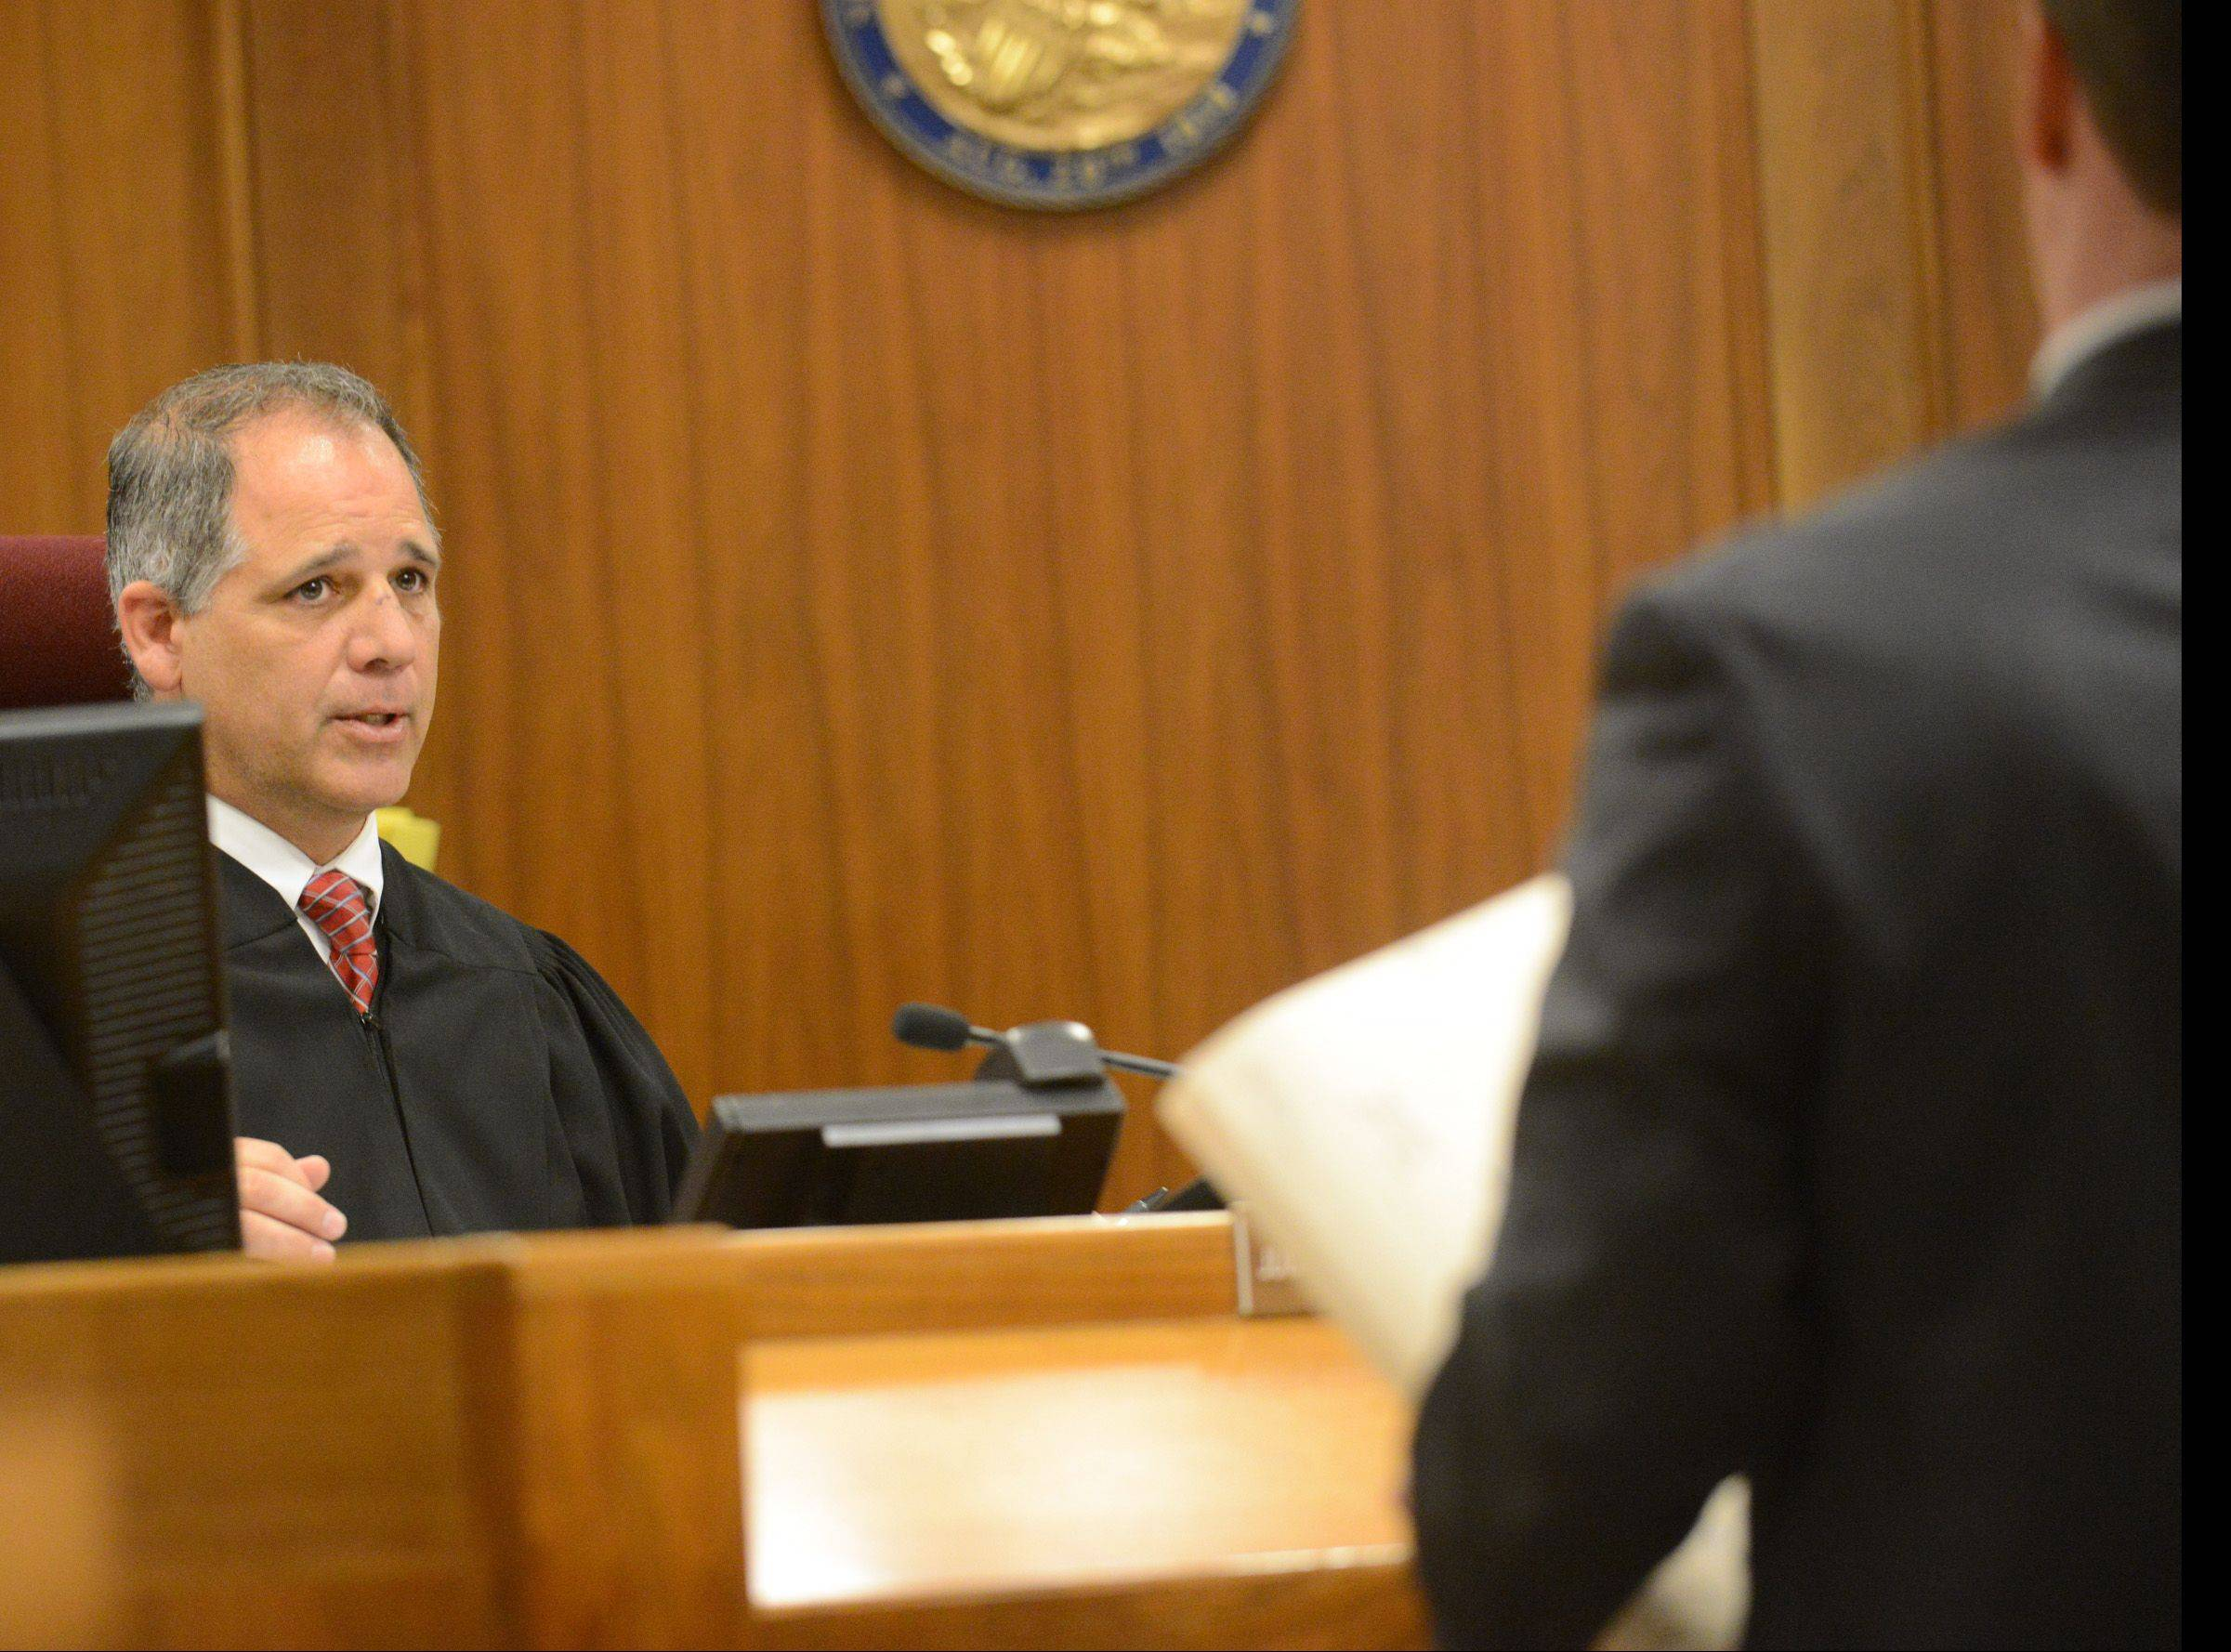 Judge Raymond Collins talks to attorneys during the sentencing hearing of Matthew Padour, 31, of Libertyville who was convicted of attacking a Metra conductor in April 2012. It marked the first time cameras were allowed in a Lake County courtroom.